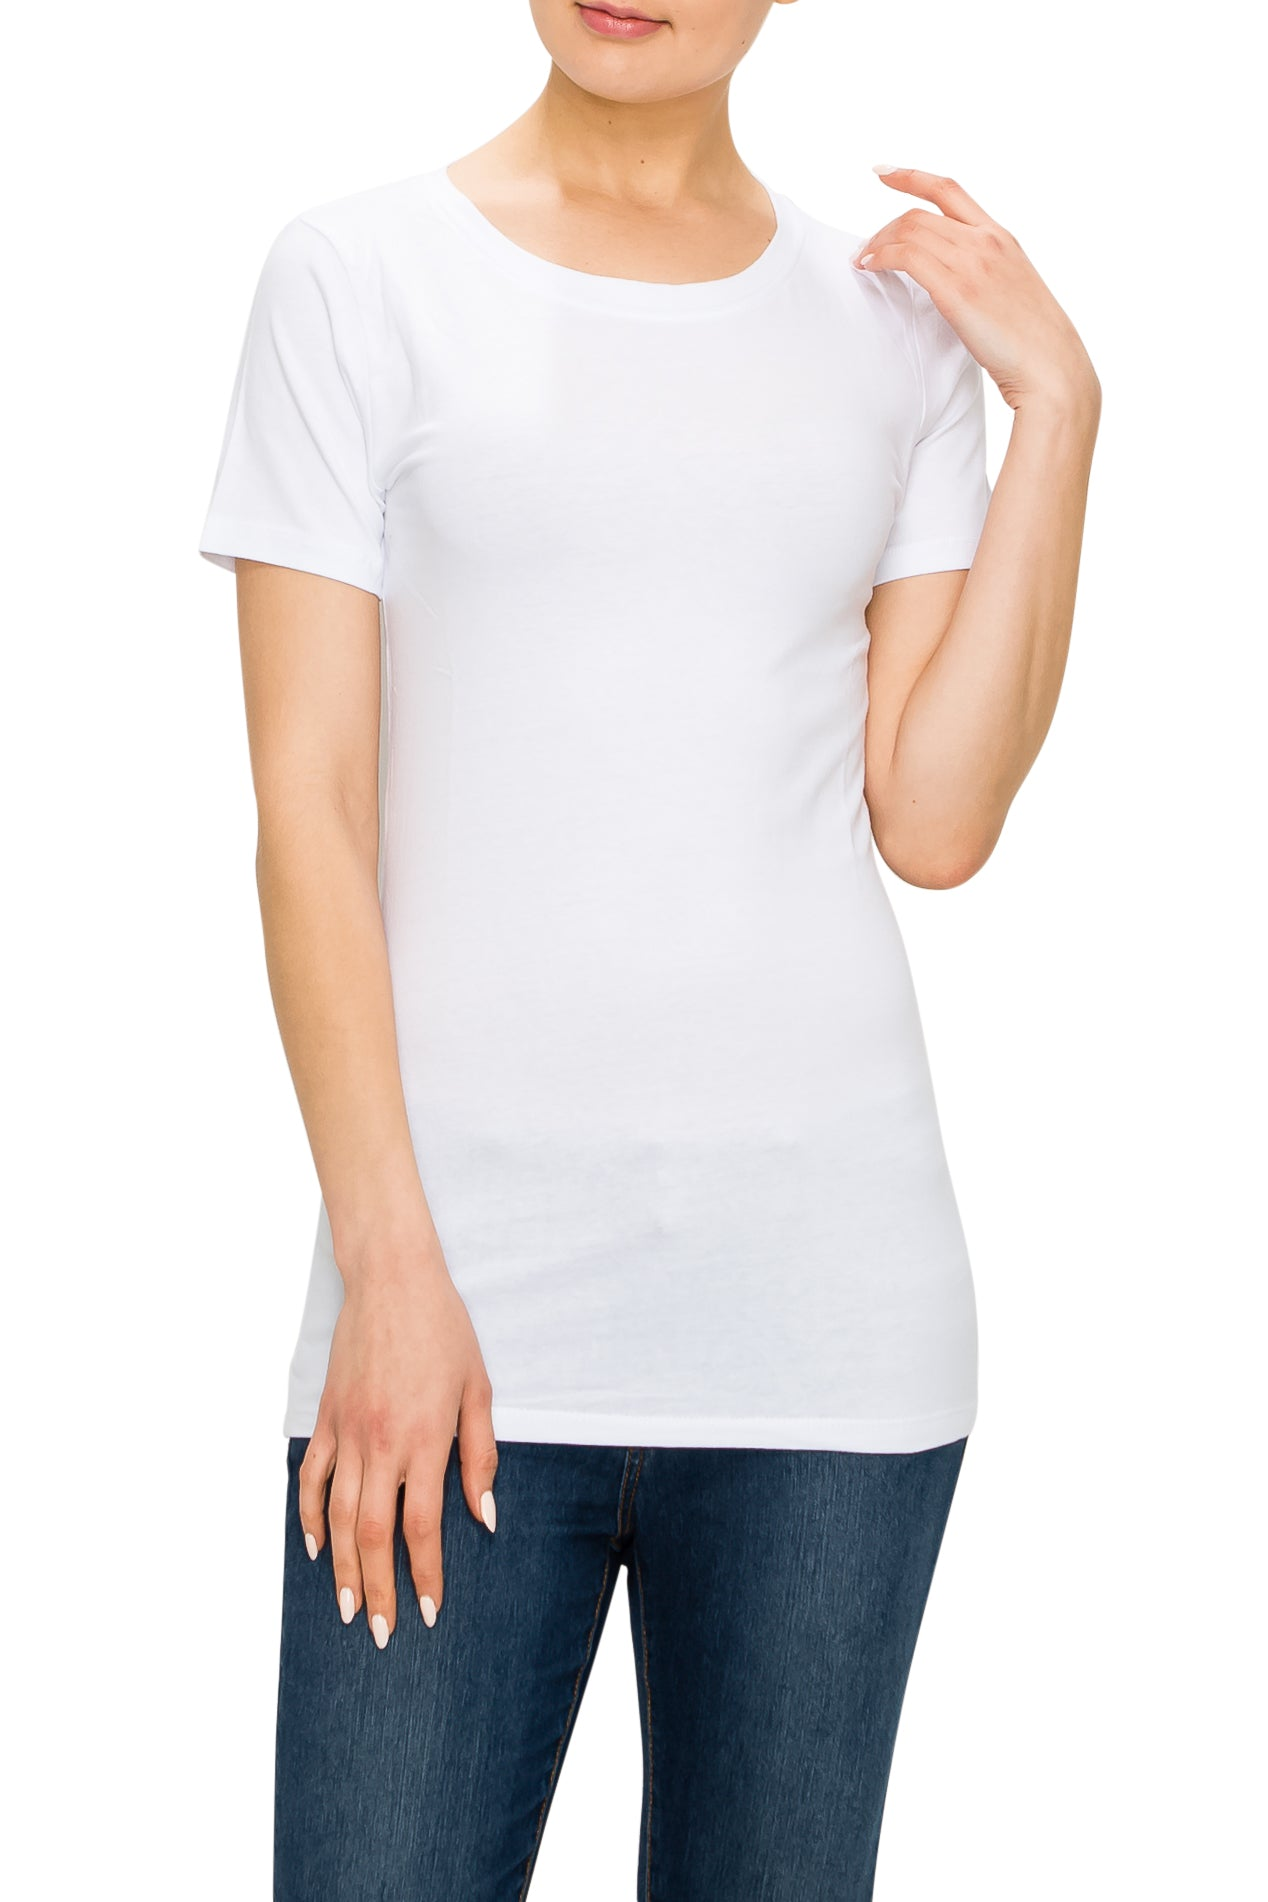 Round Neck Short Sleeve T-Shirt - Poplooks